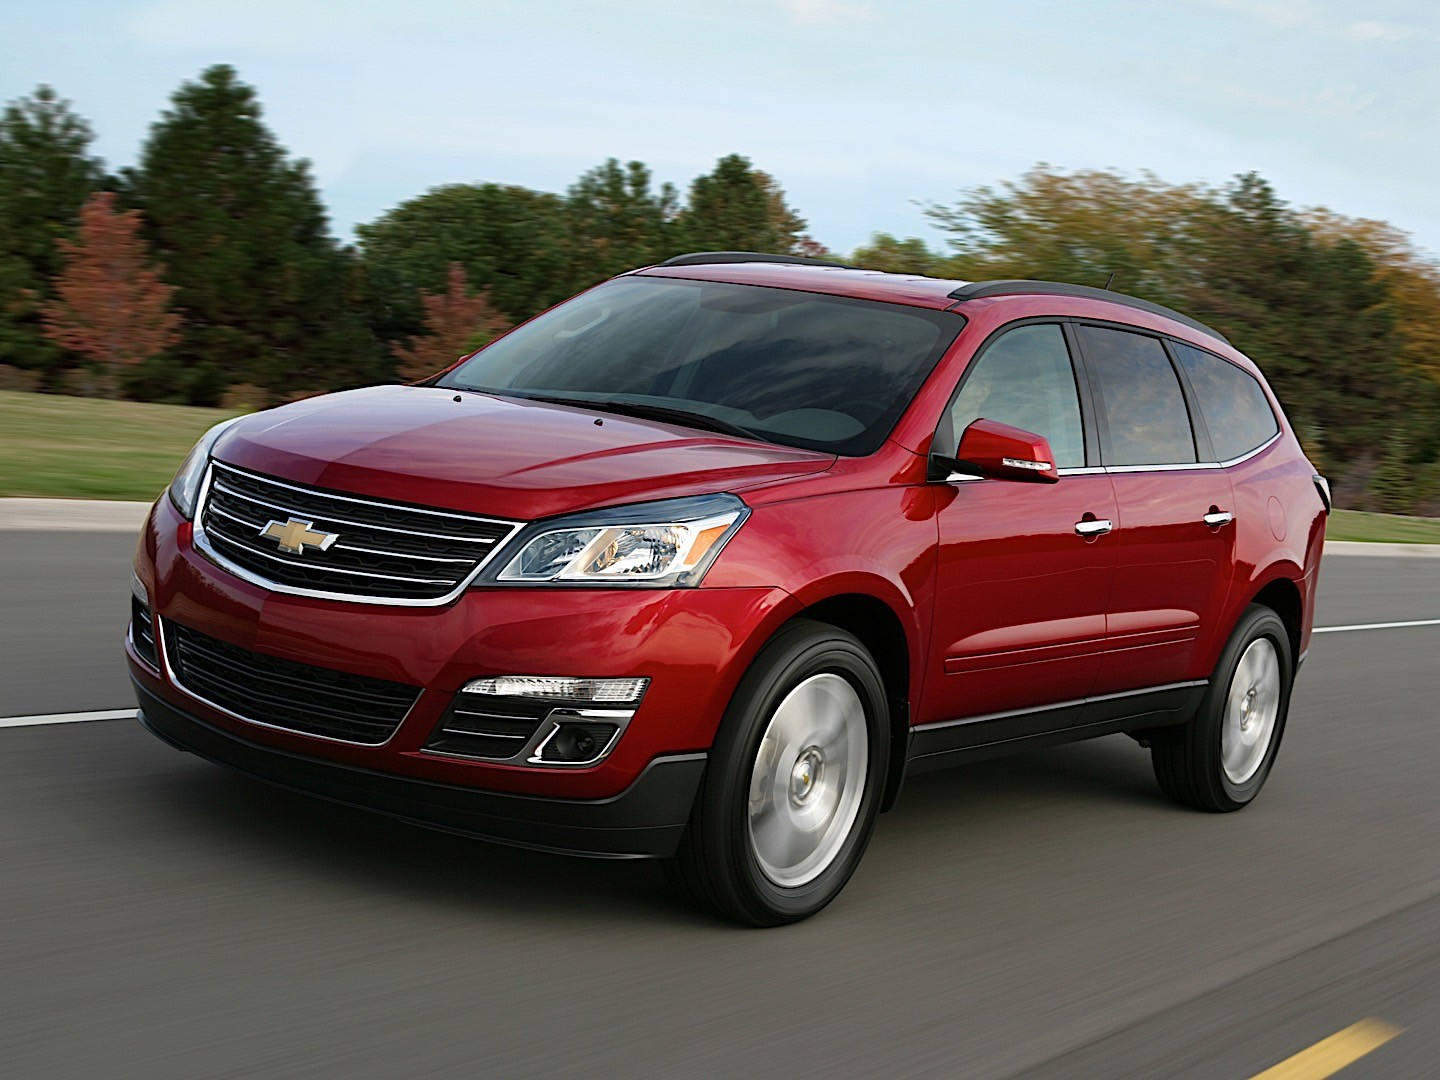 2015 Chevy Traverse For Sale >> CHEVROLET Traverse specs & photos - 2012, 2013, 2014, 2015 ...